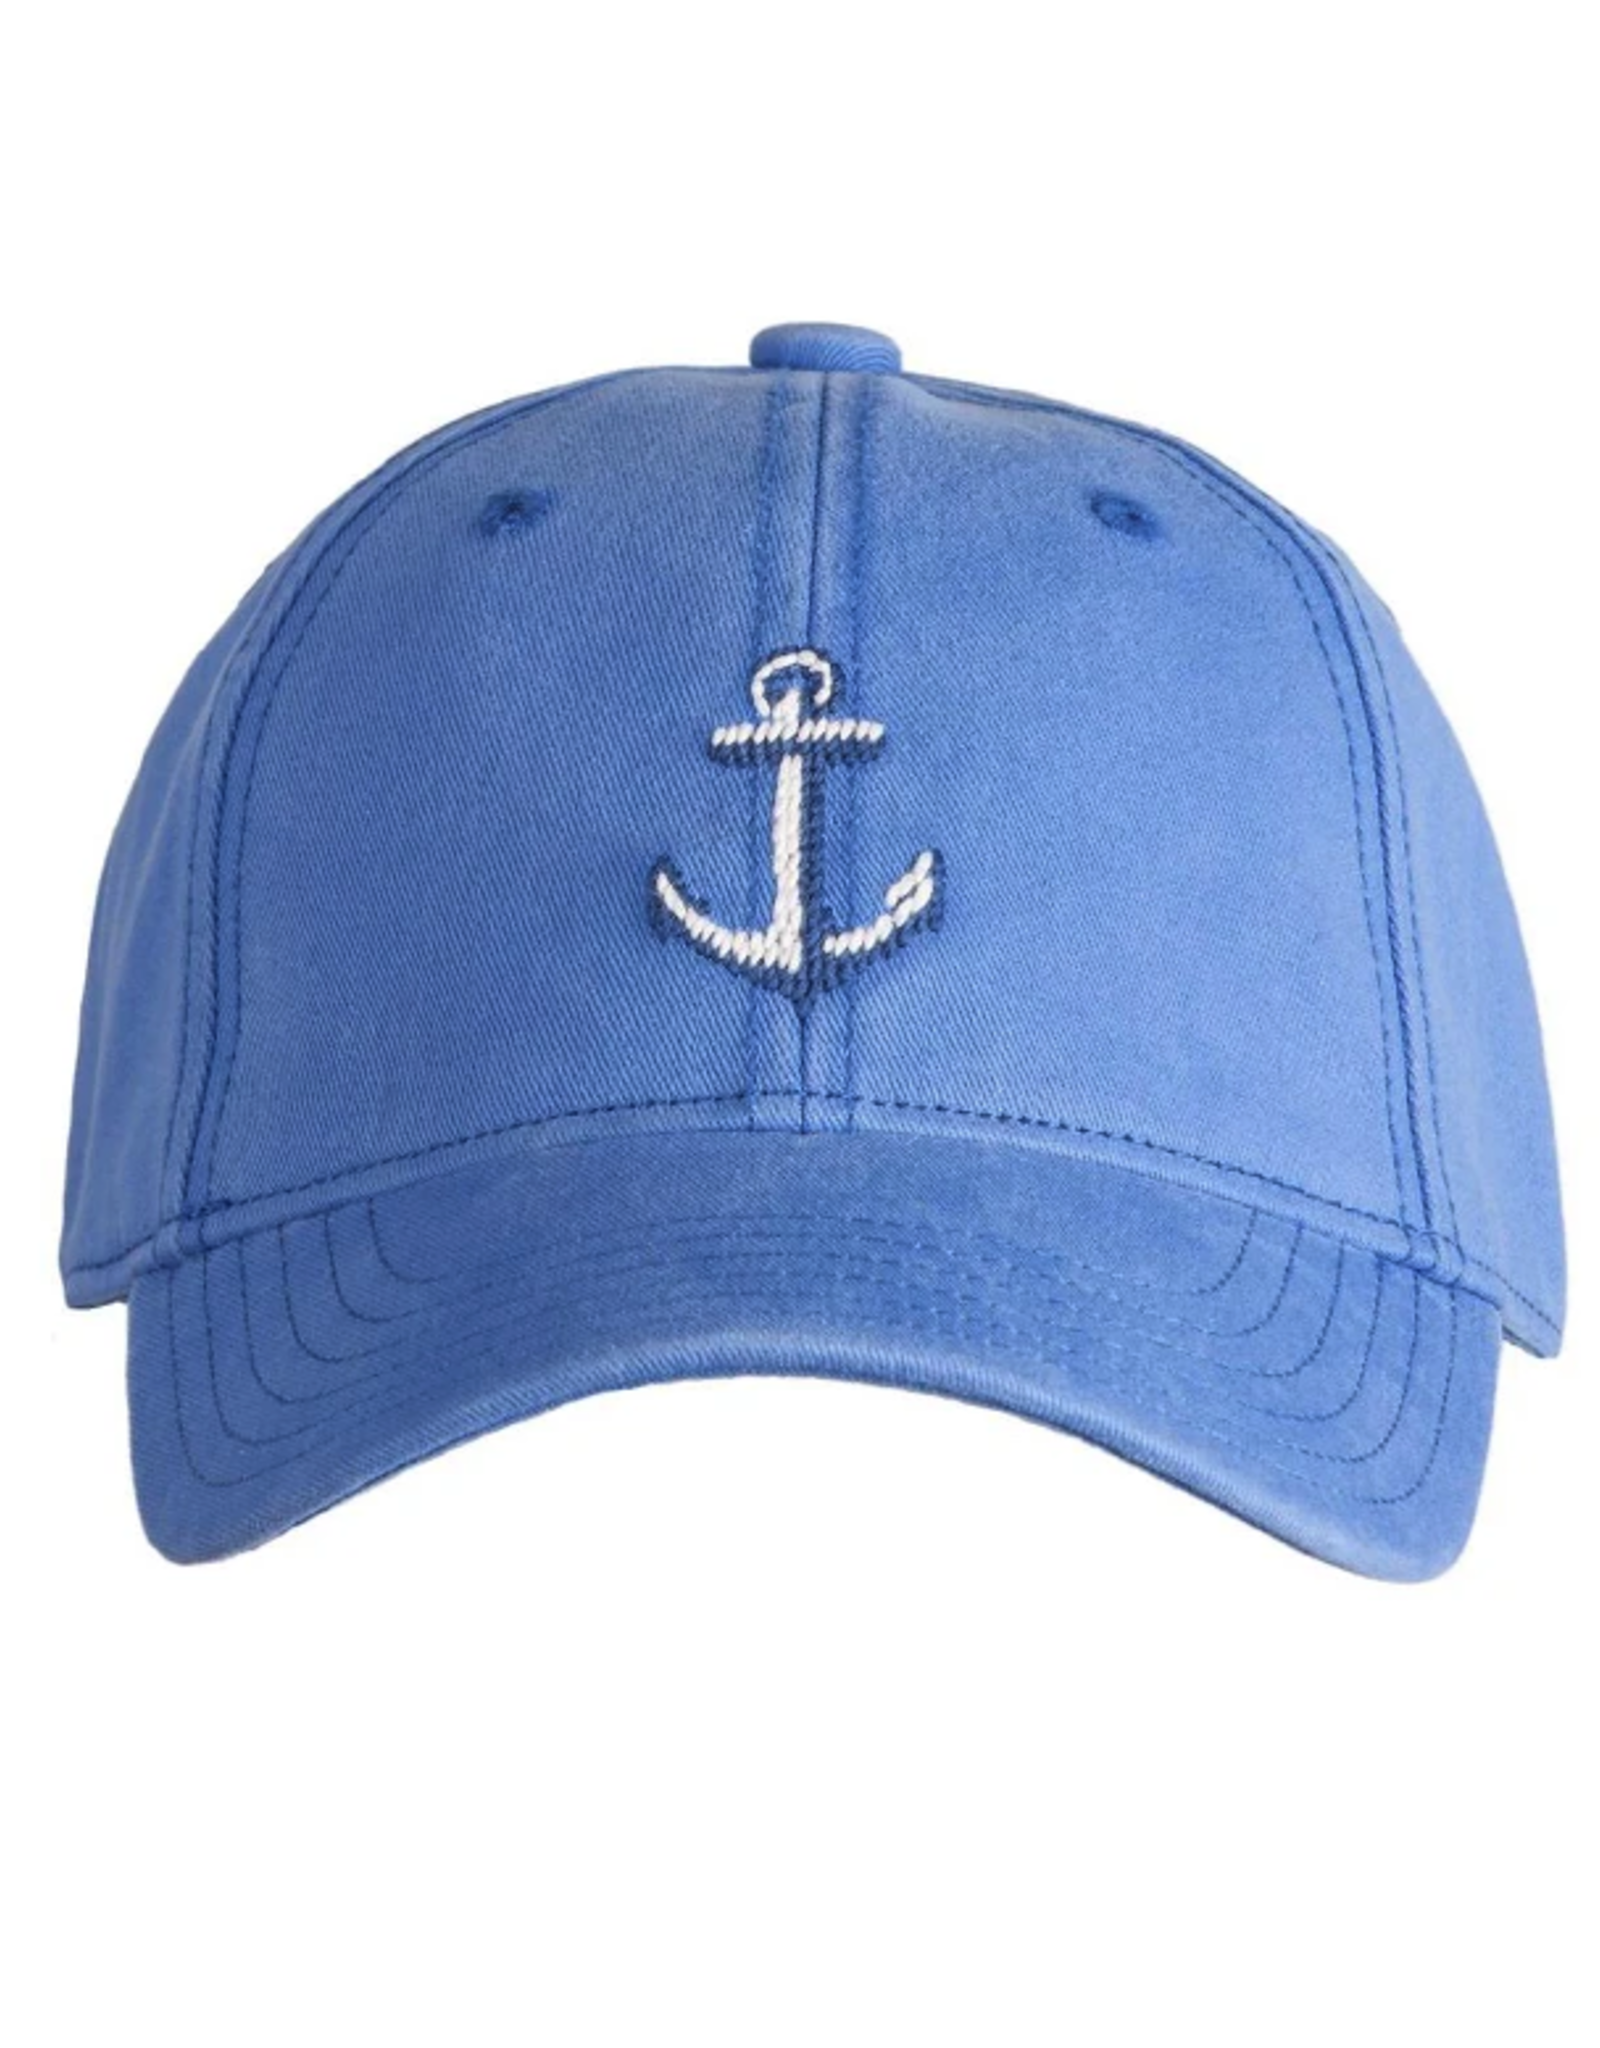 Harding Lane Harding Lane - Anchor on Periwinkle Kids Hat